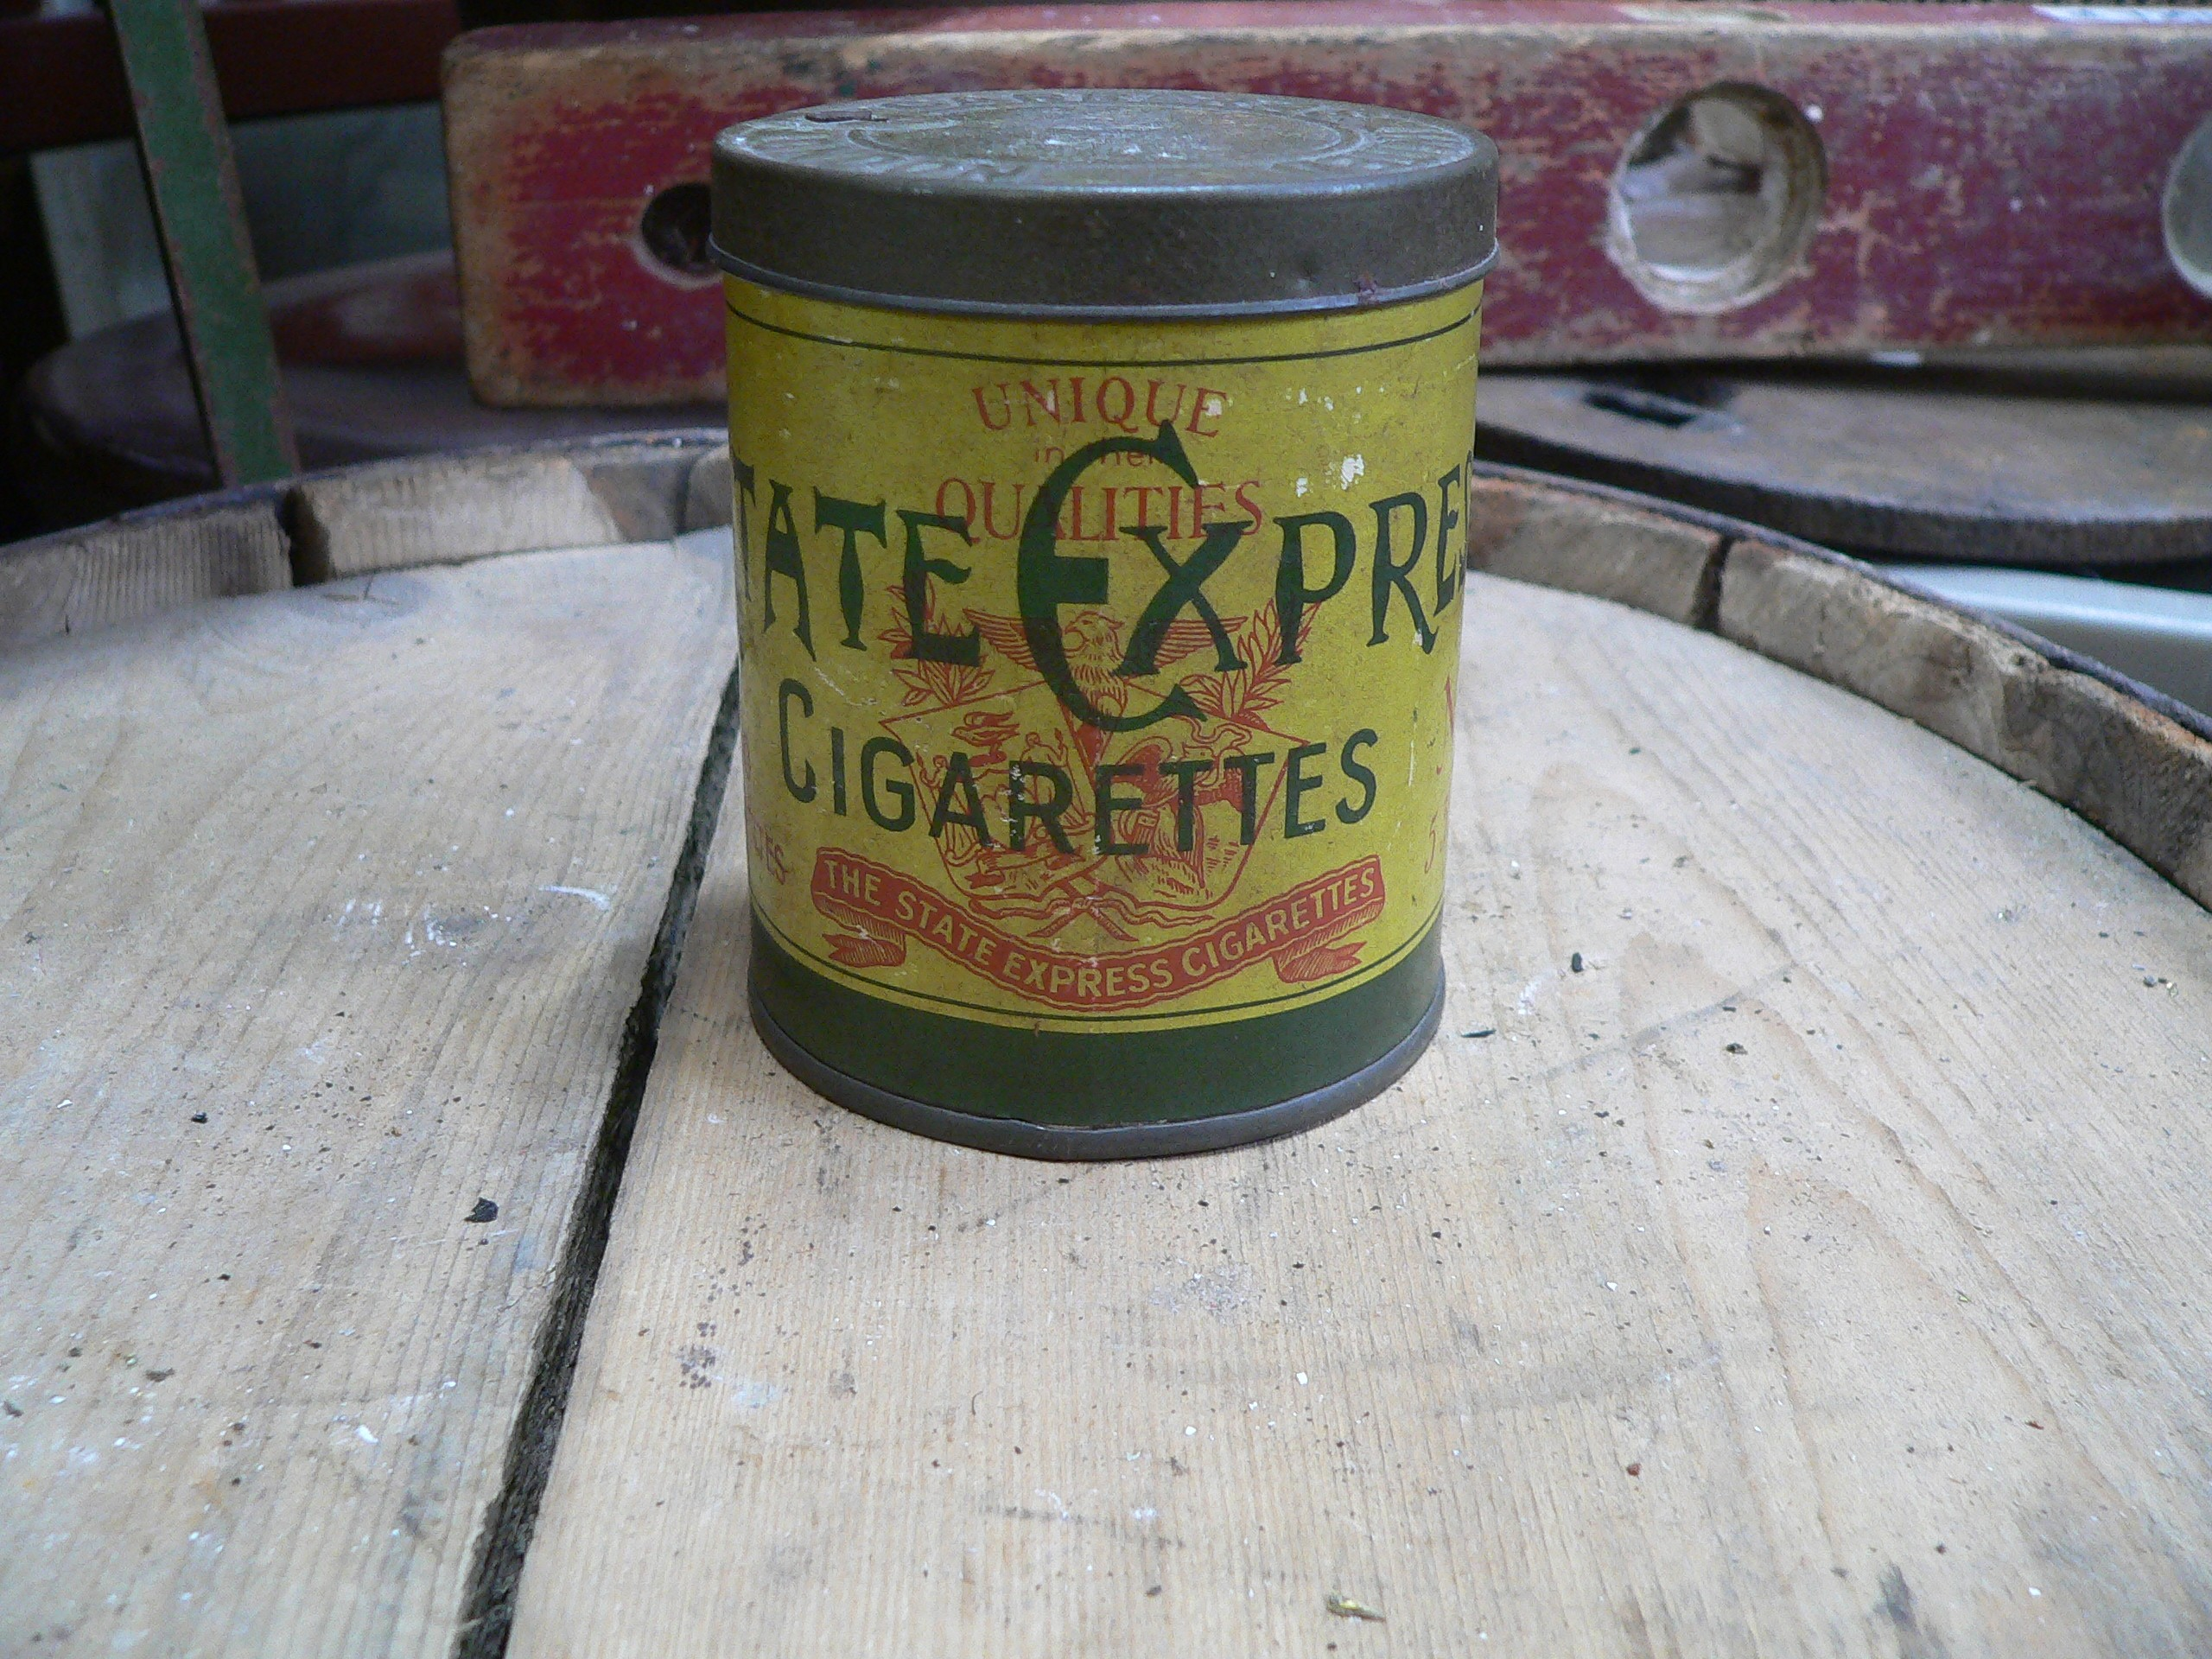 Canne de tabac state express antique # 7311.1